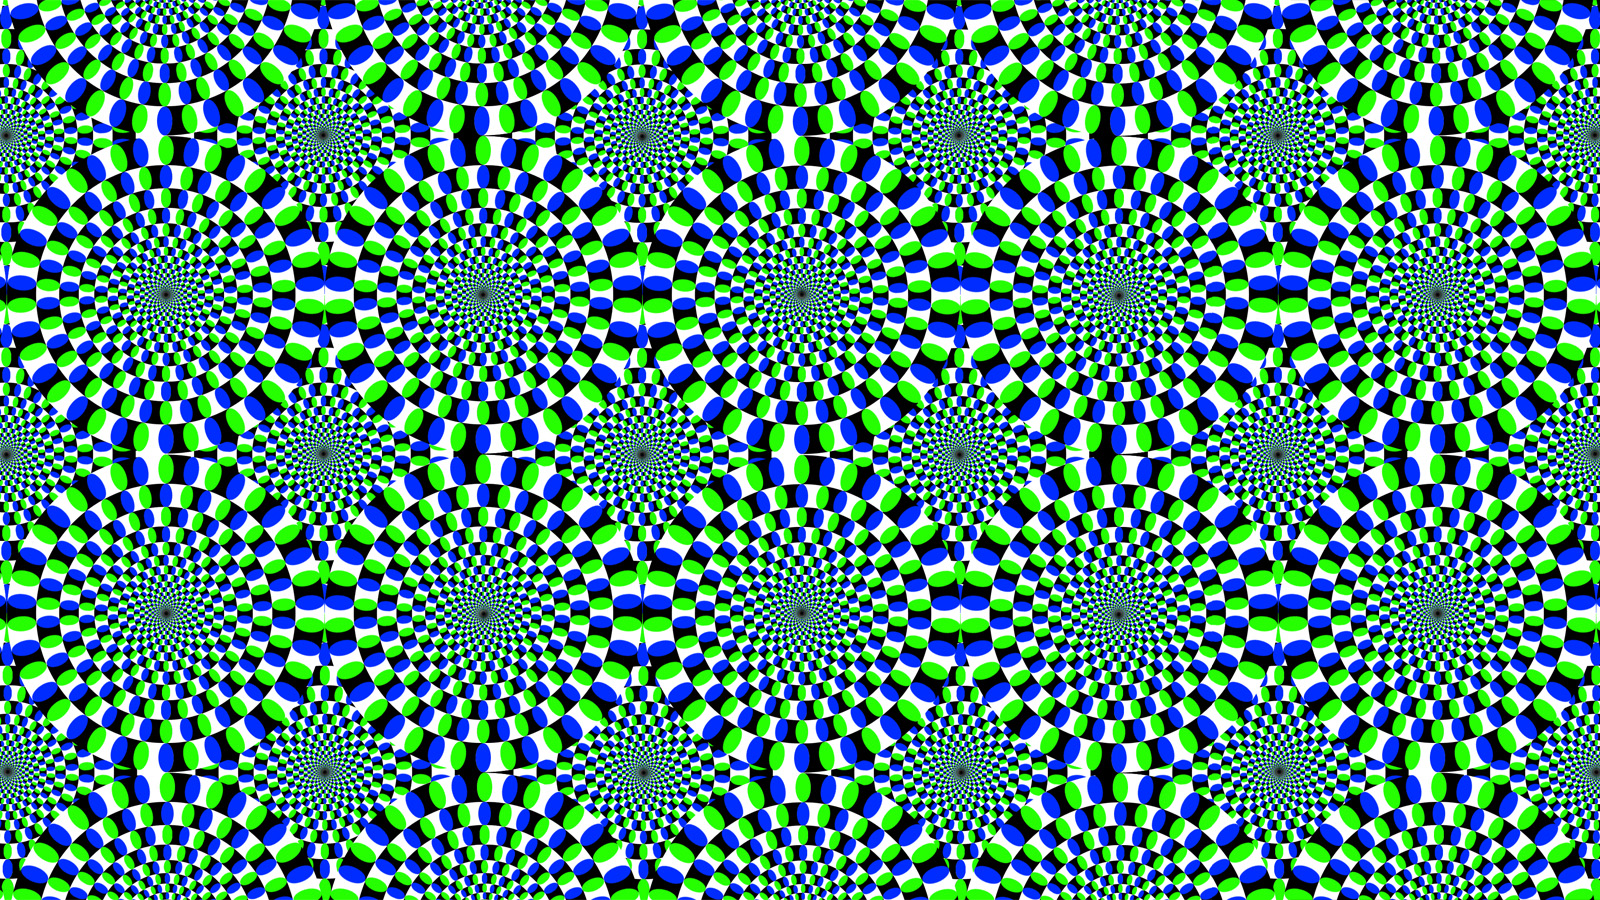 3d Magic Eye Moving Wallpapers Dr Augustine Fou S Online Scrapbook 2 3 13 2 10 13